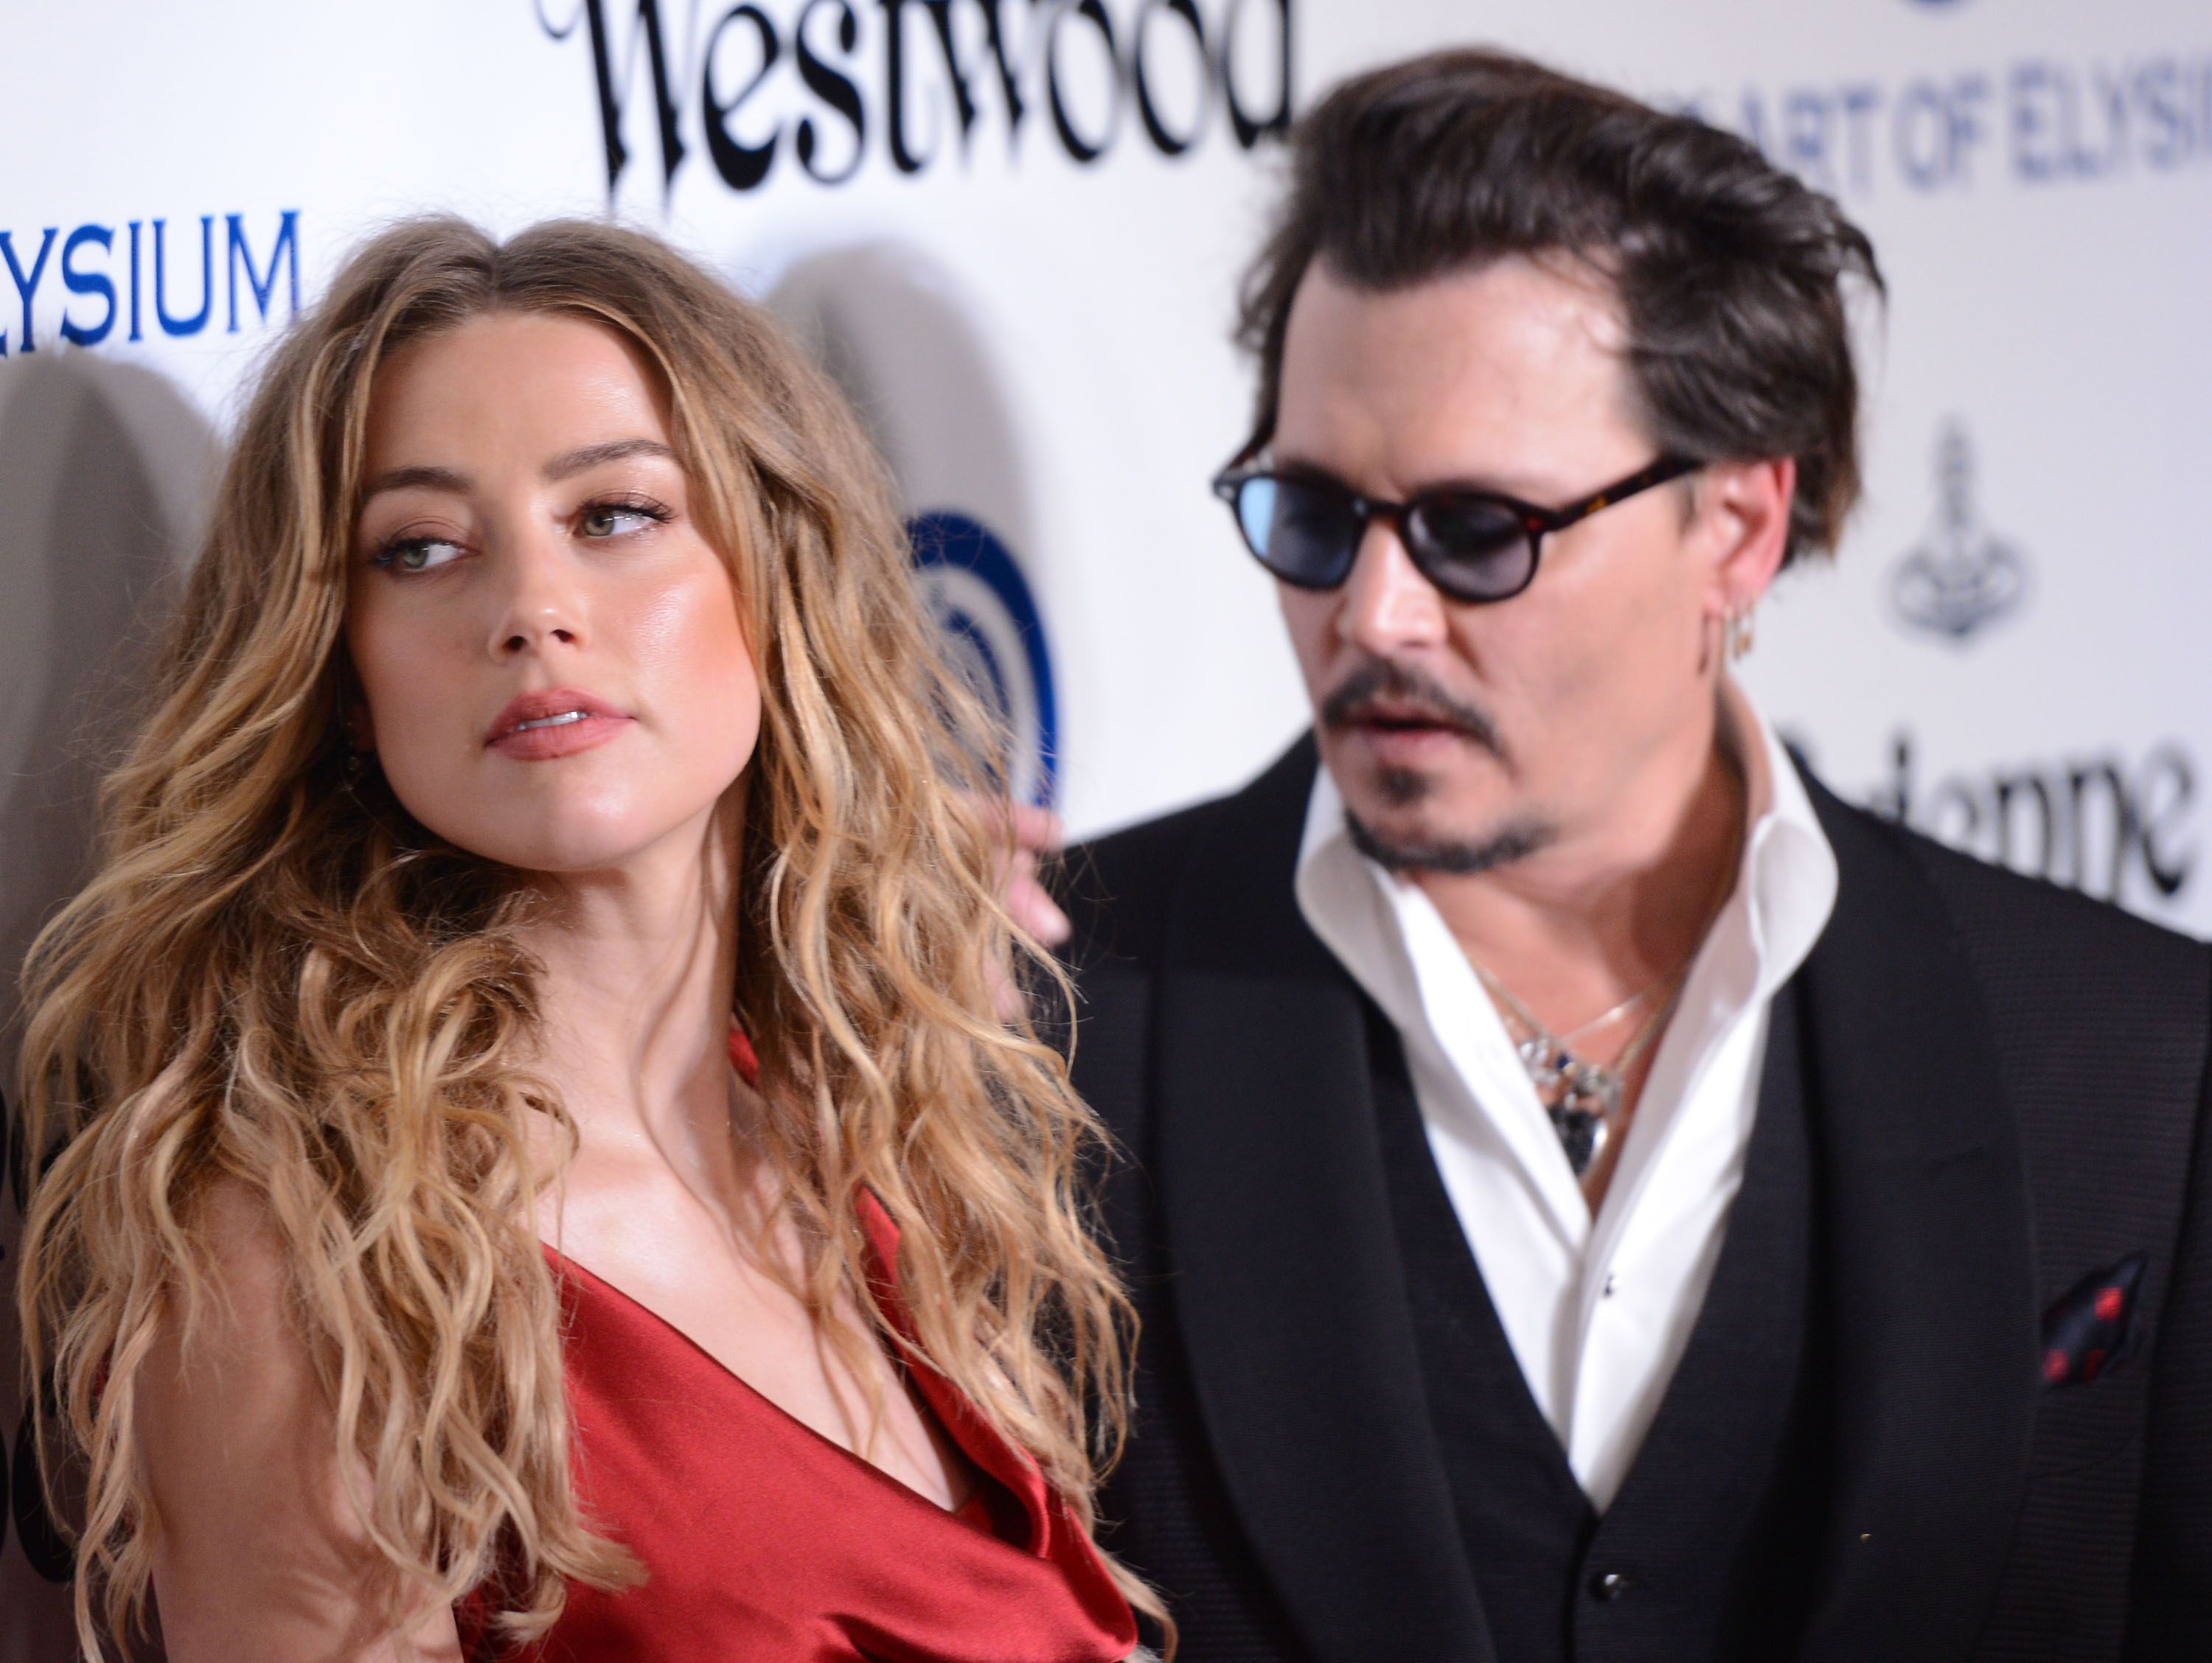 Johnny Depp and Amber Heard / Getty Images